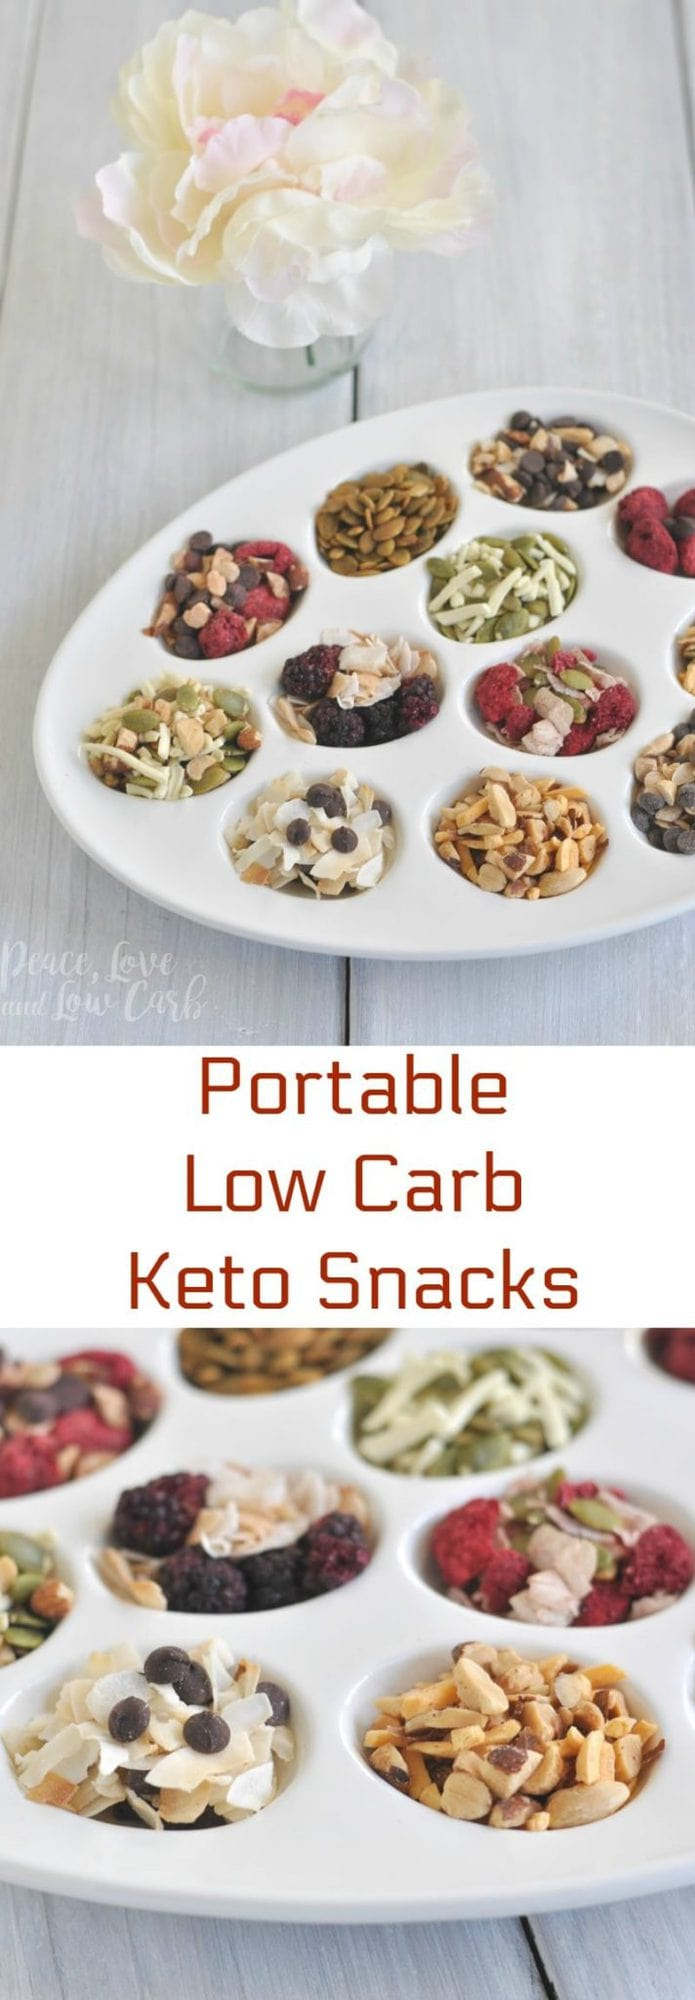 Portable Low Carb Keto Snacks | Peace Love and Low Carb